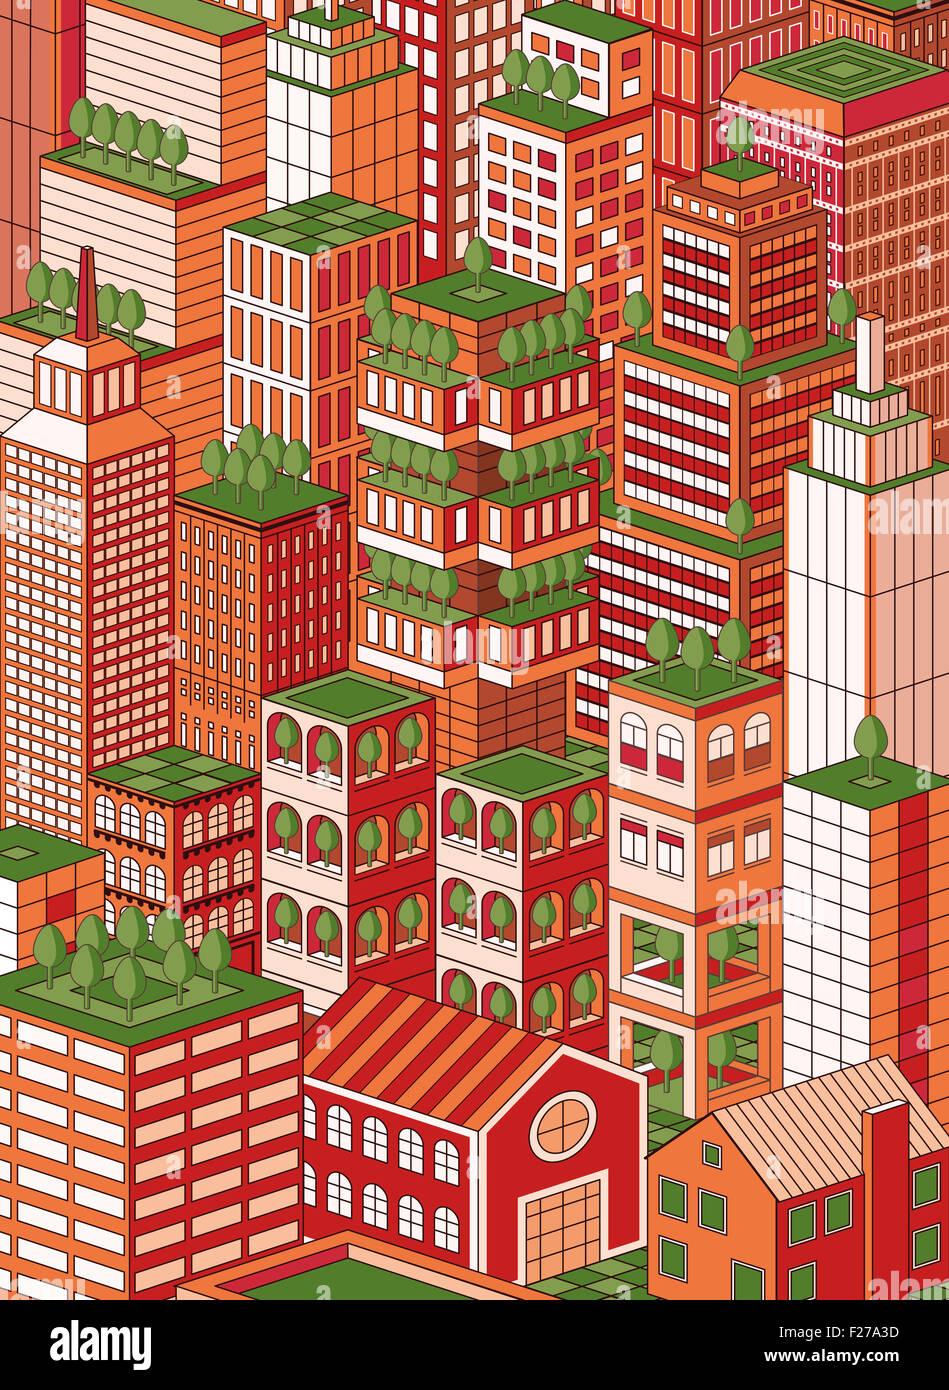 isometric green town cityscape - Stock Image